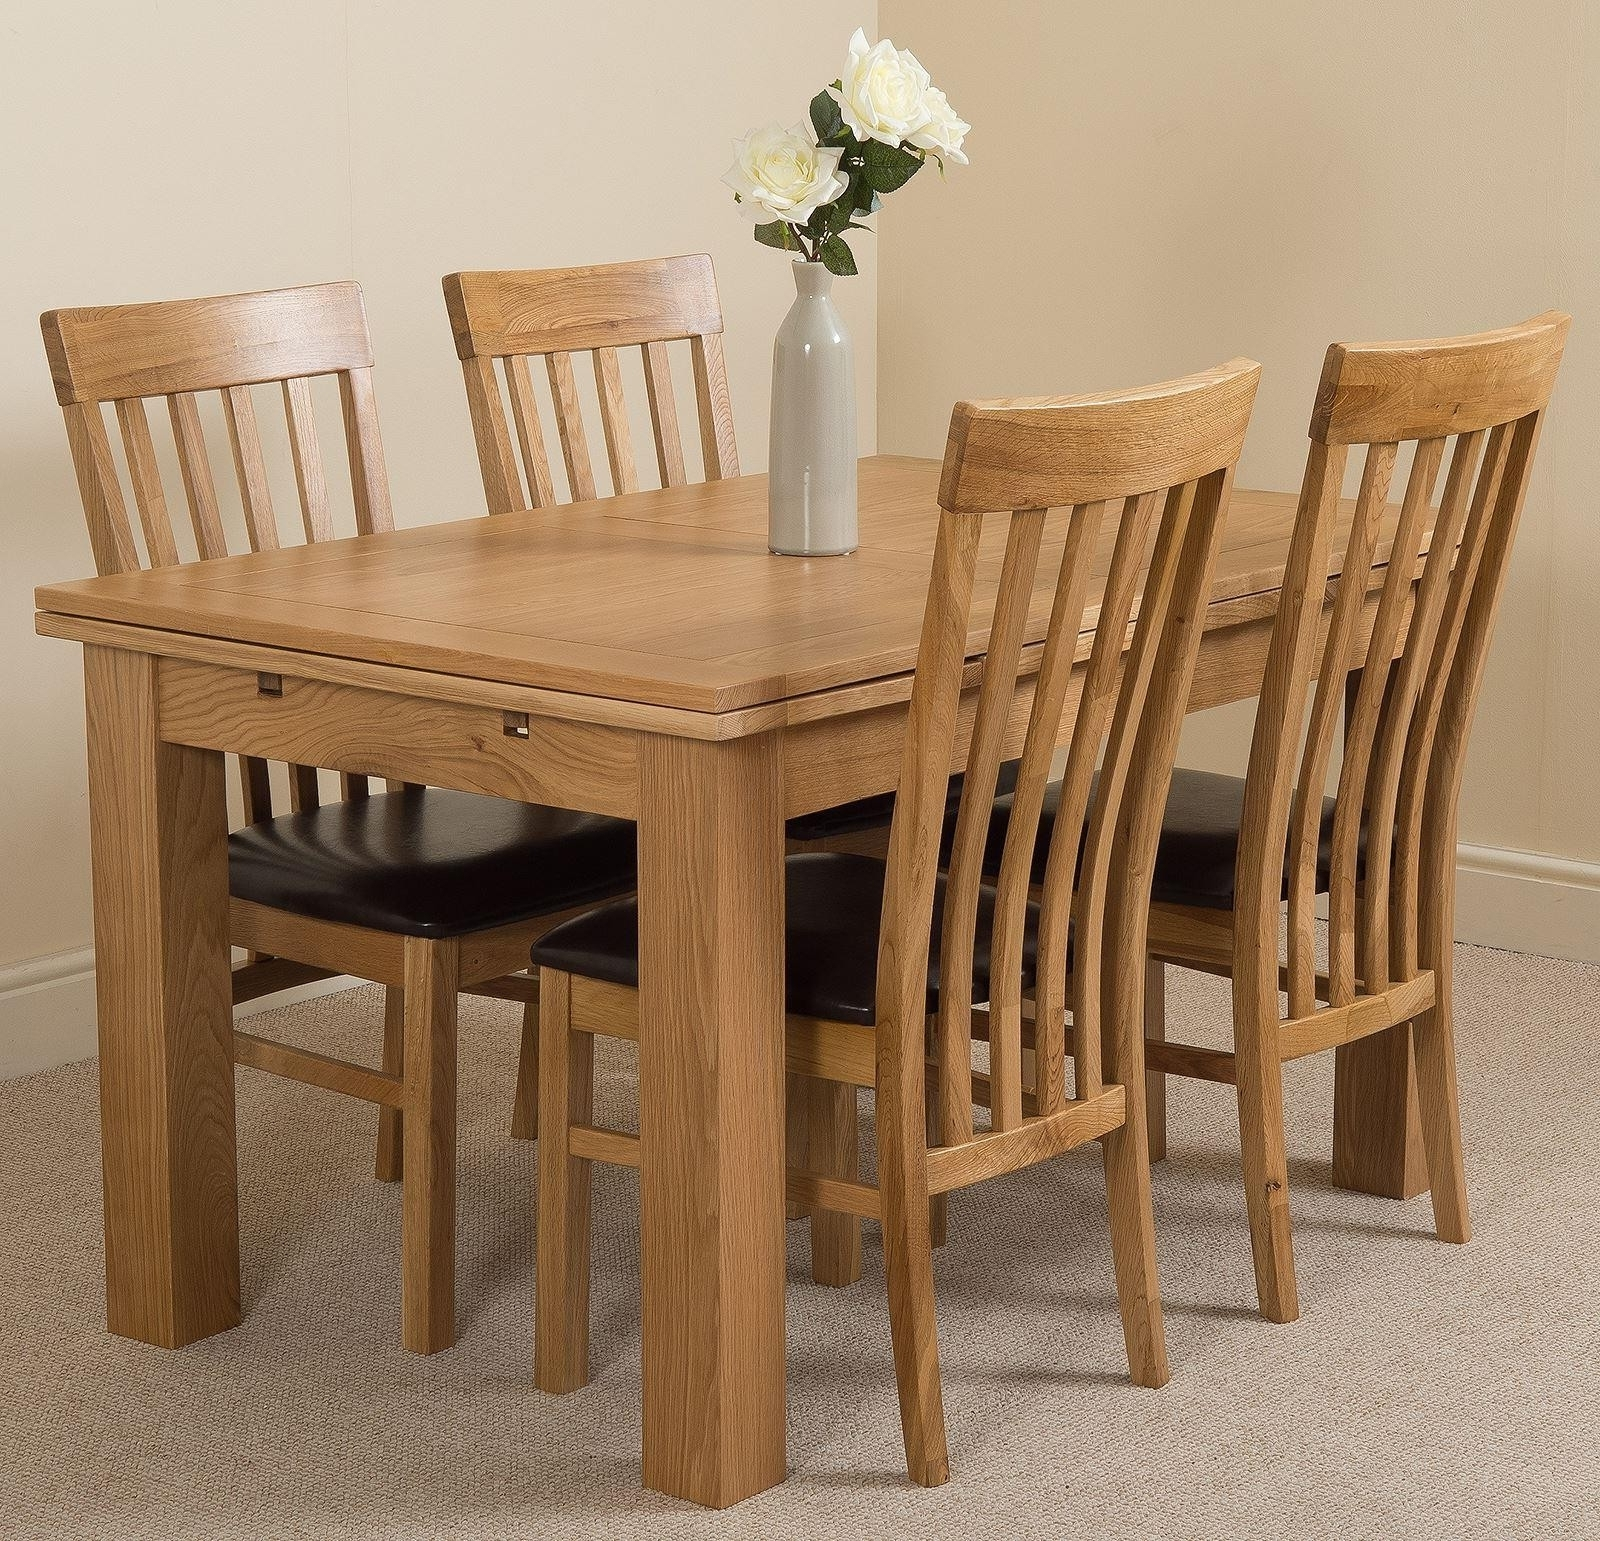 Extending Oak Dining Tables And Chairs with regard to Popular Richmond Oak Small Dining Set 4 Harvard Chairs